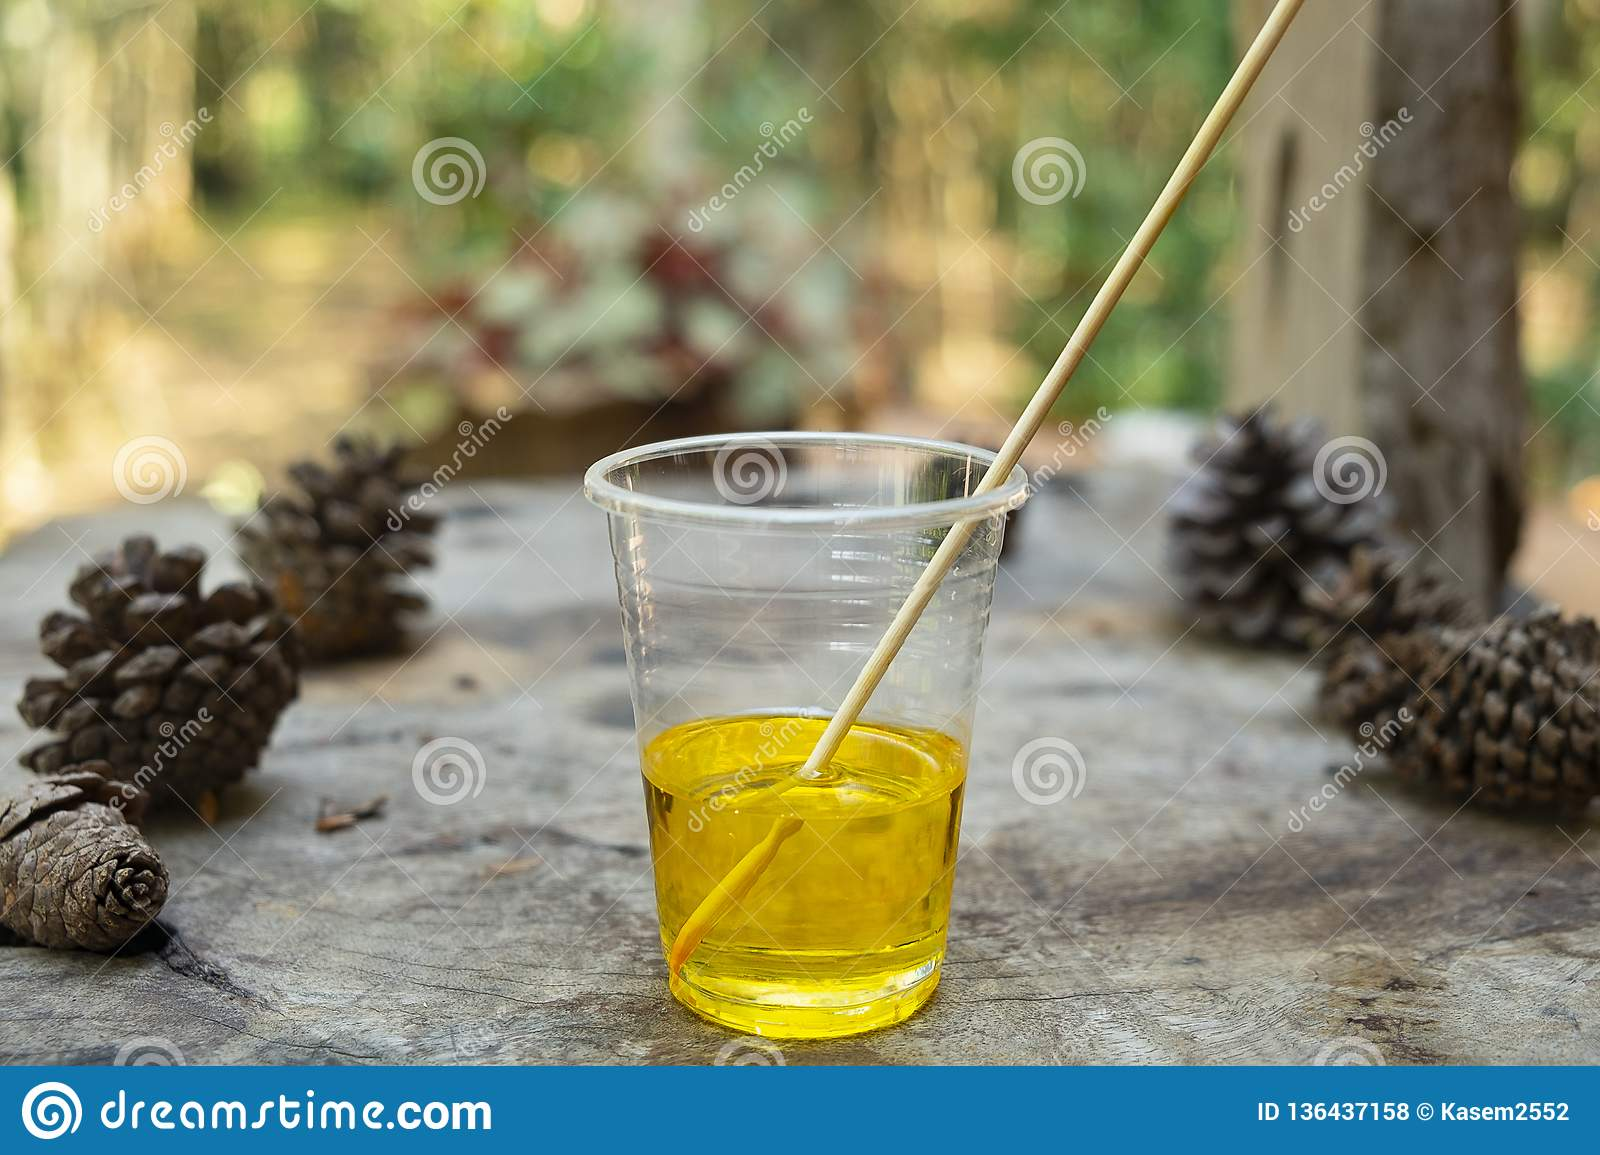 Epoxy Resin Yellow Color In Cup For Casting Stabilizing Wood And